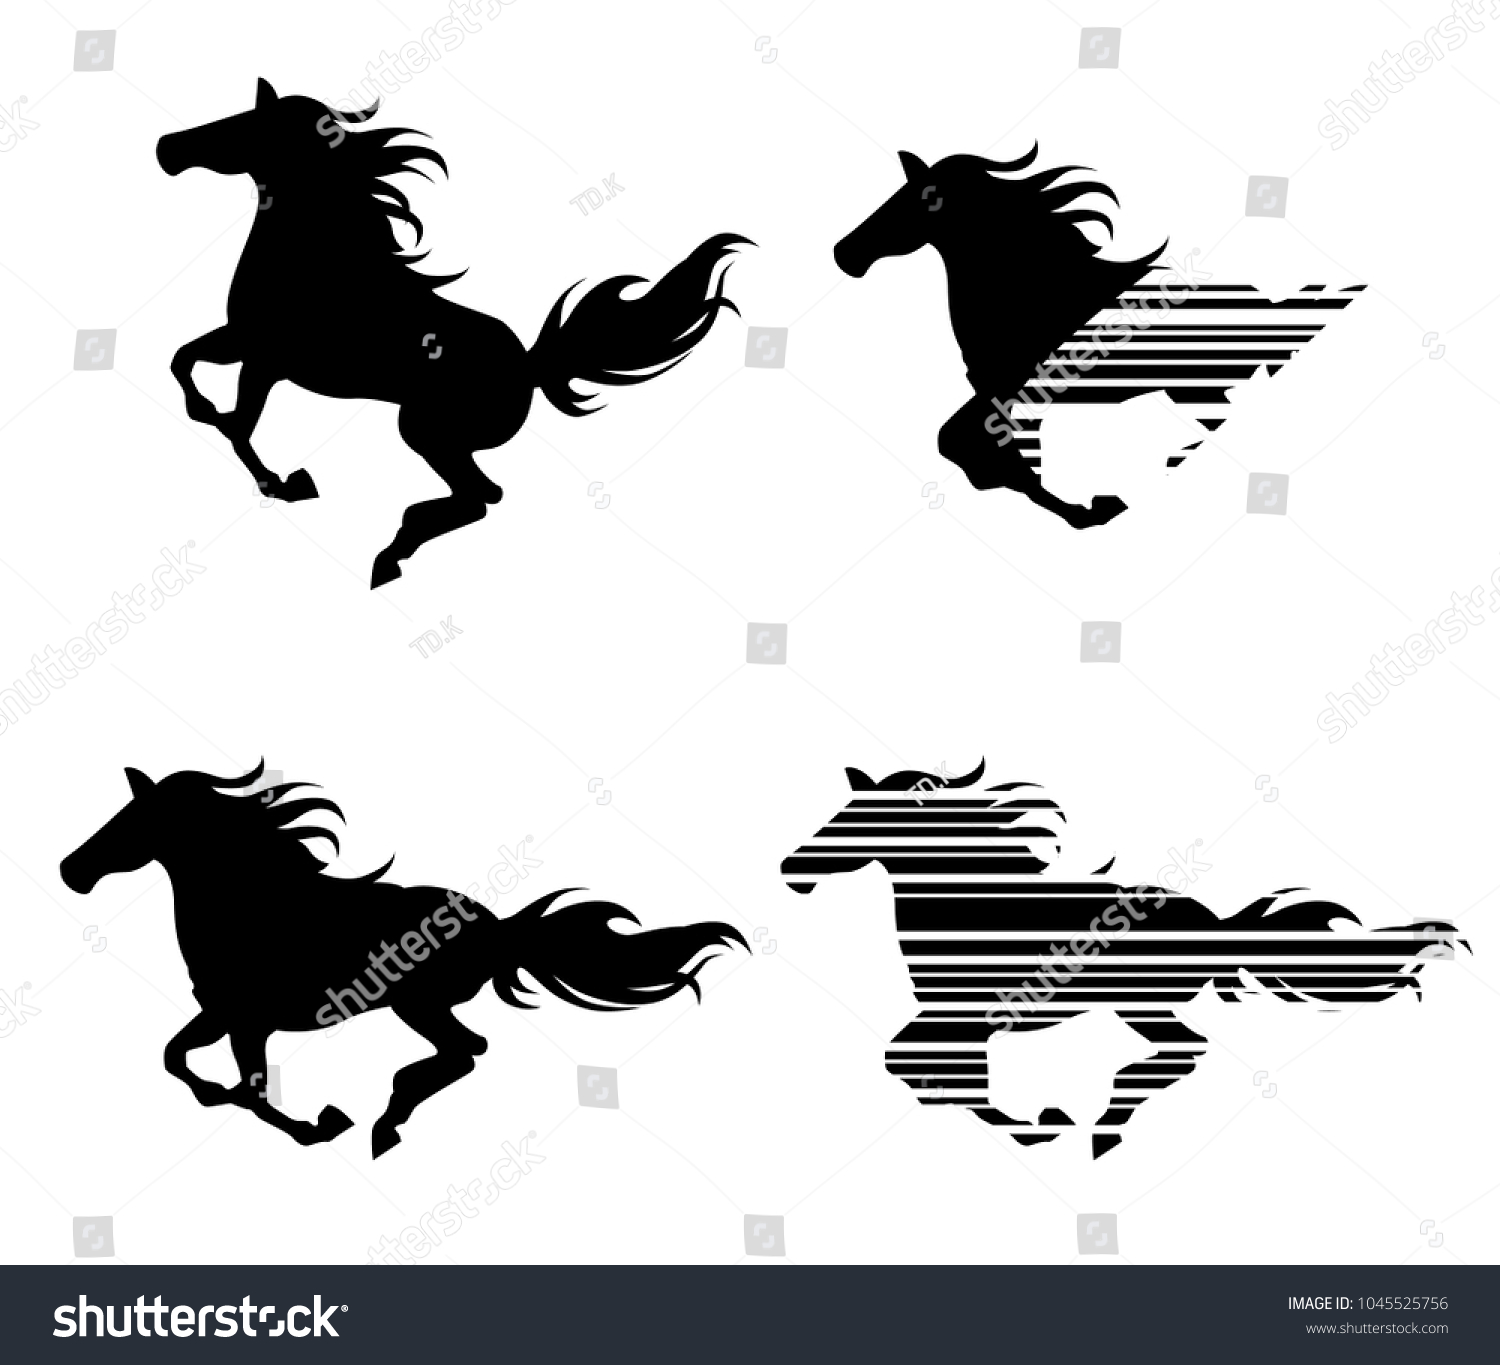 Running Horse Vector Horse Silhouette Stock Vector Royalty Free 1045525756